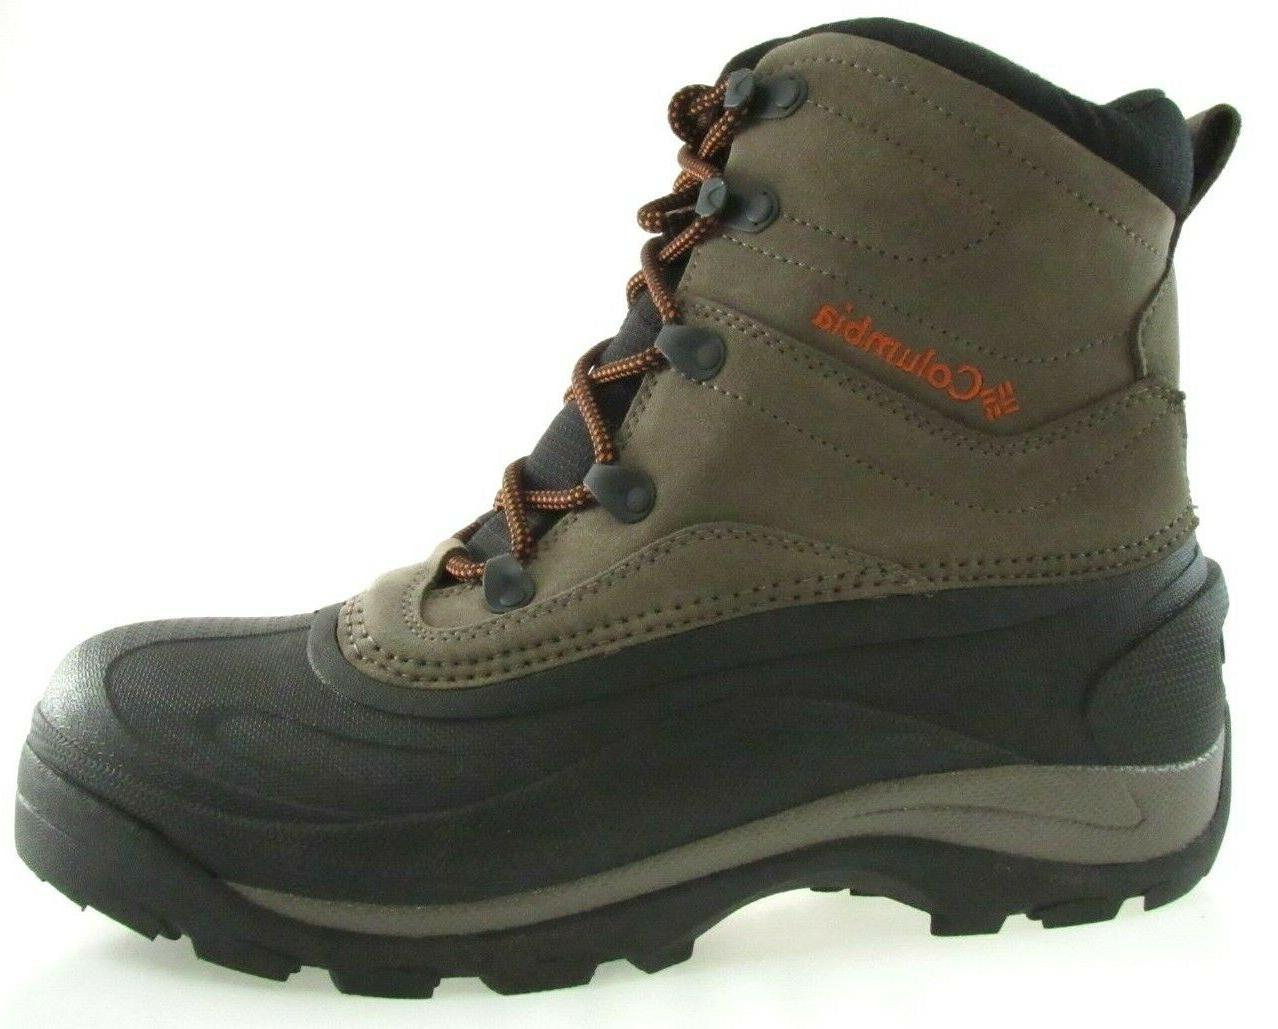 COLUMBIA CASCADIAN SUMMIT 2 MEN'S BROWN/BLACK WINTER BOOTS s